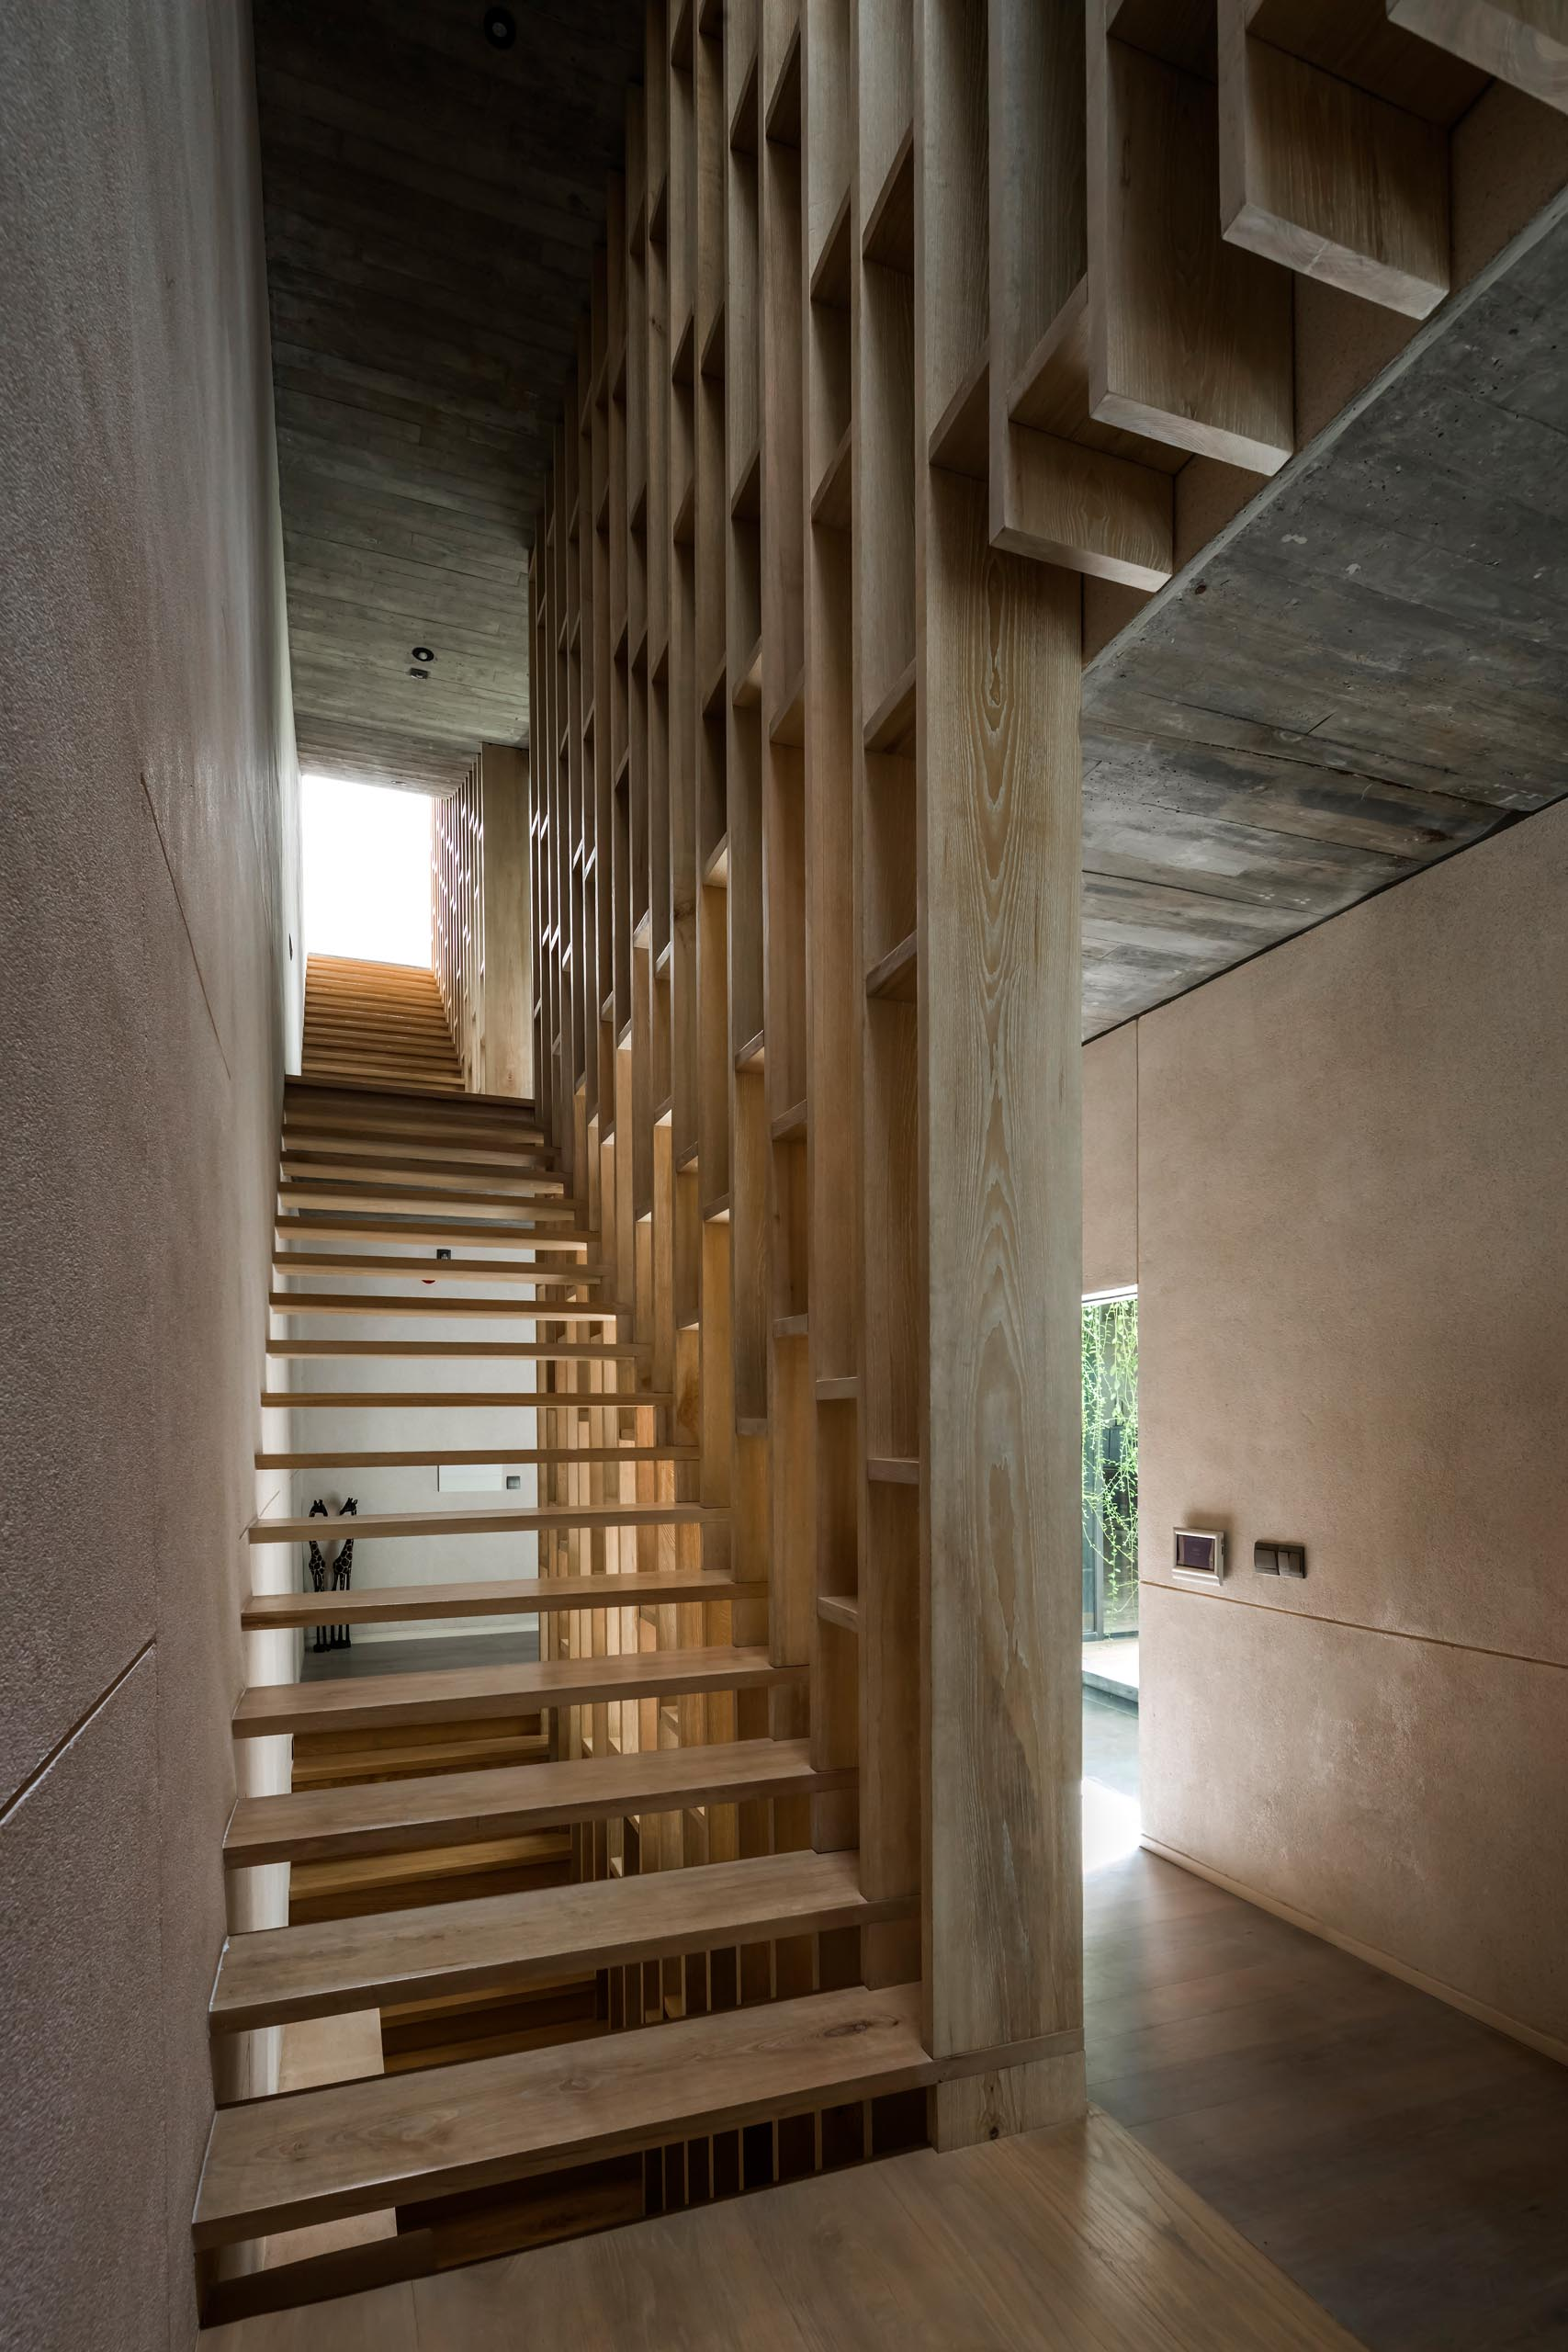 Modern wood stairs with shelves.